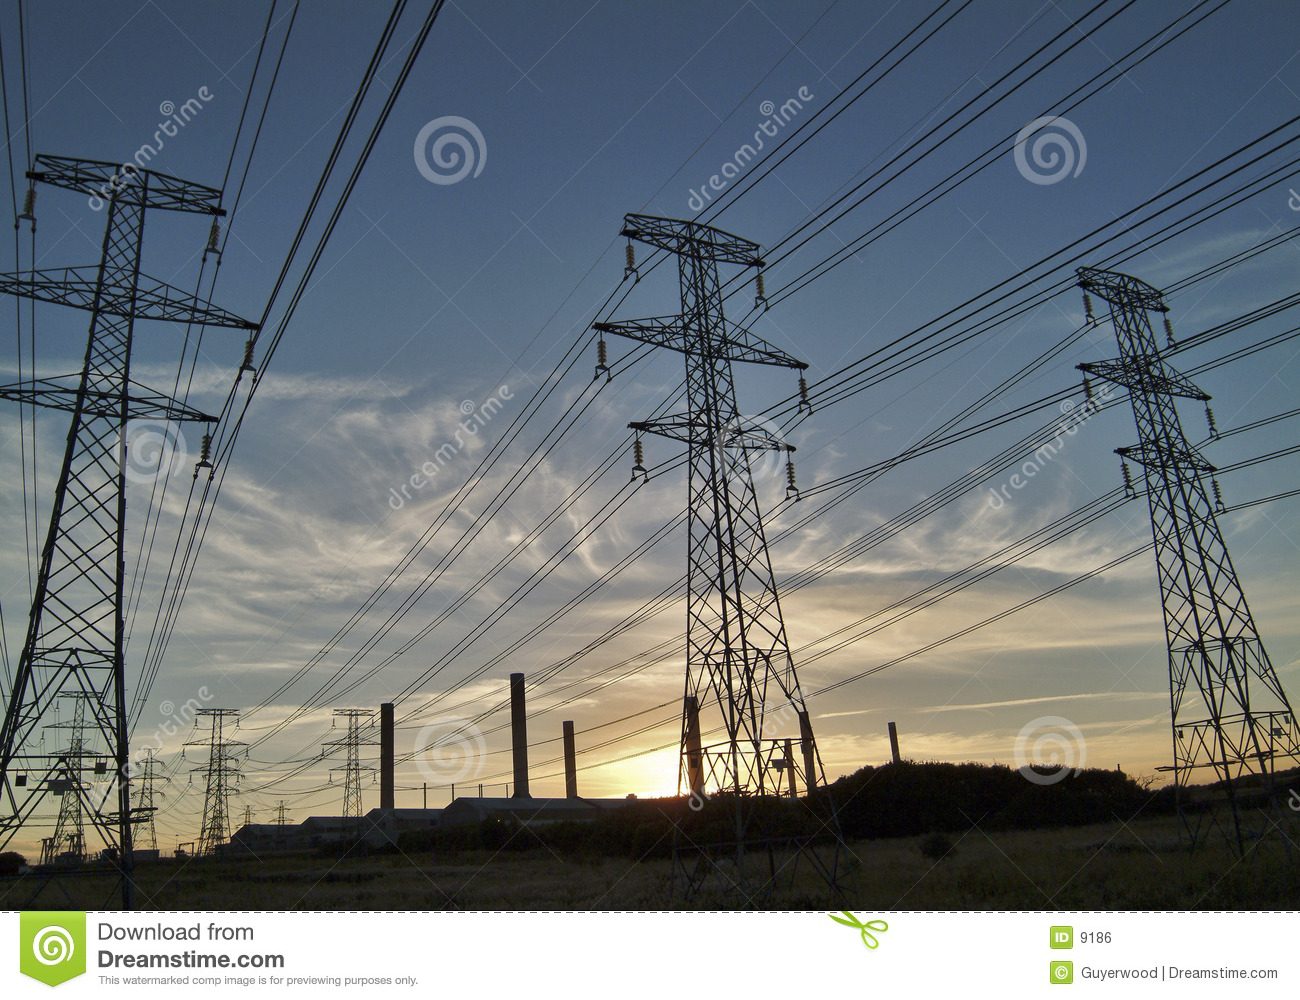 High tension power